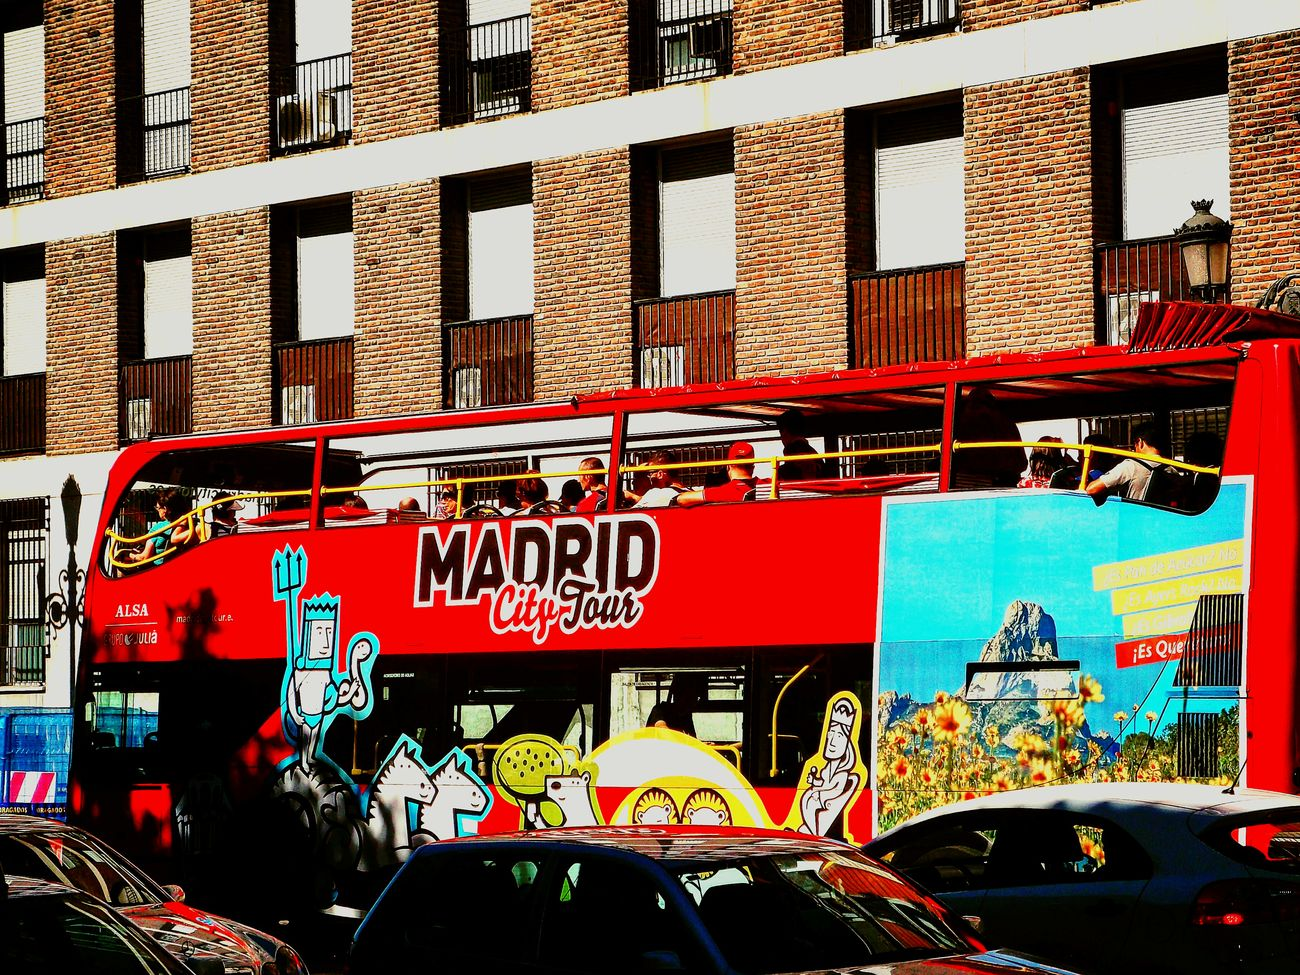 Ciudad de Madrid Travel Outdoors City Day Red Photography Streetphotography Street Life Streetstyle Urban Reflections Urbanexploration Urbanphotography Photoshoot Photourist Photographer Spaintoday España🇪🇸 Madrid, España Spainphotographer